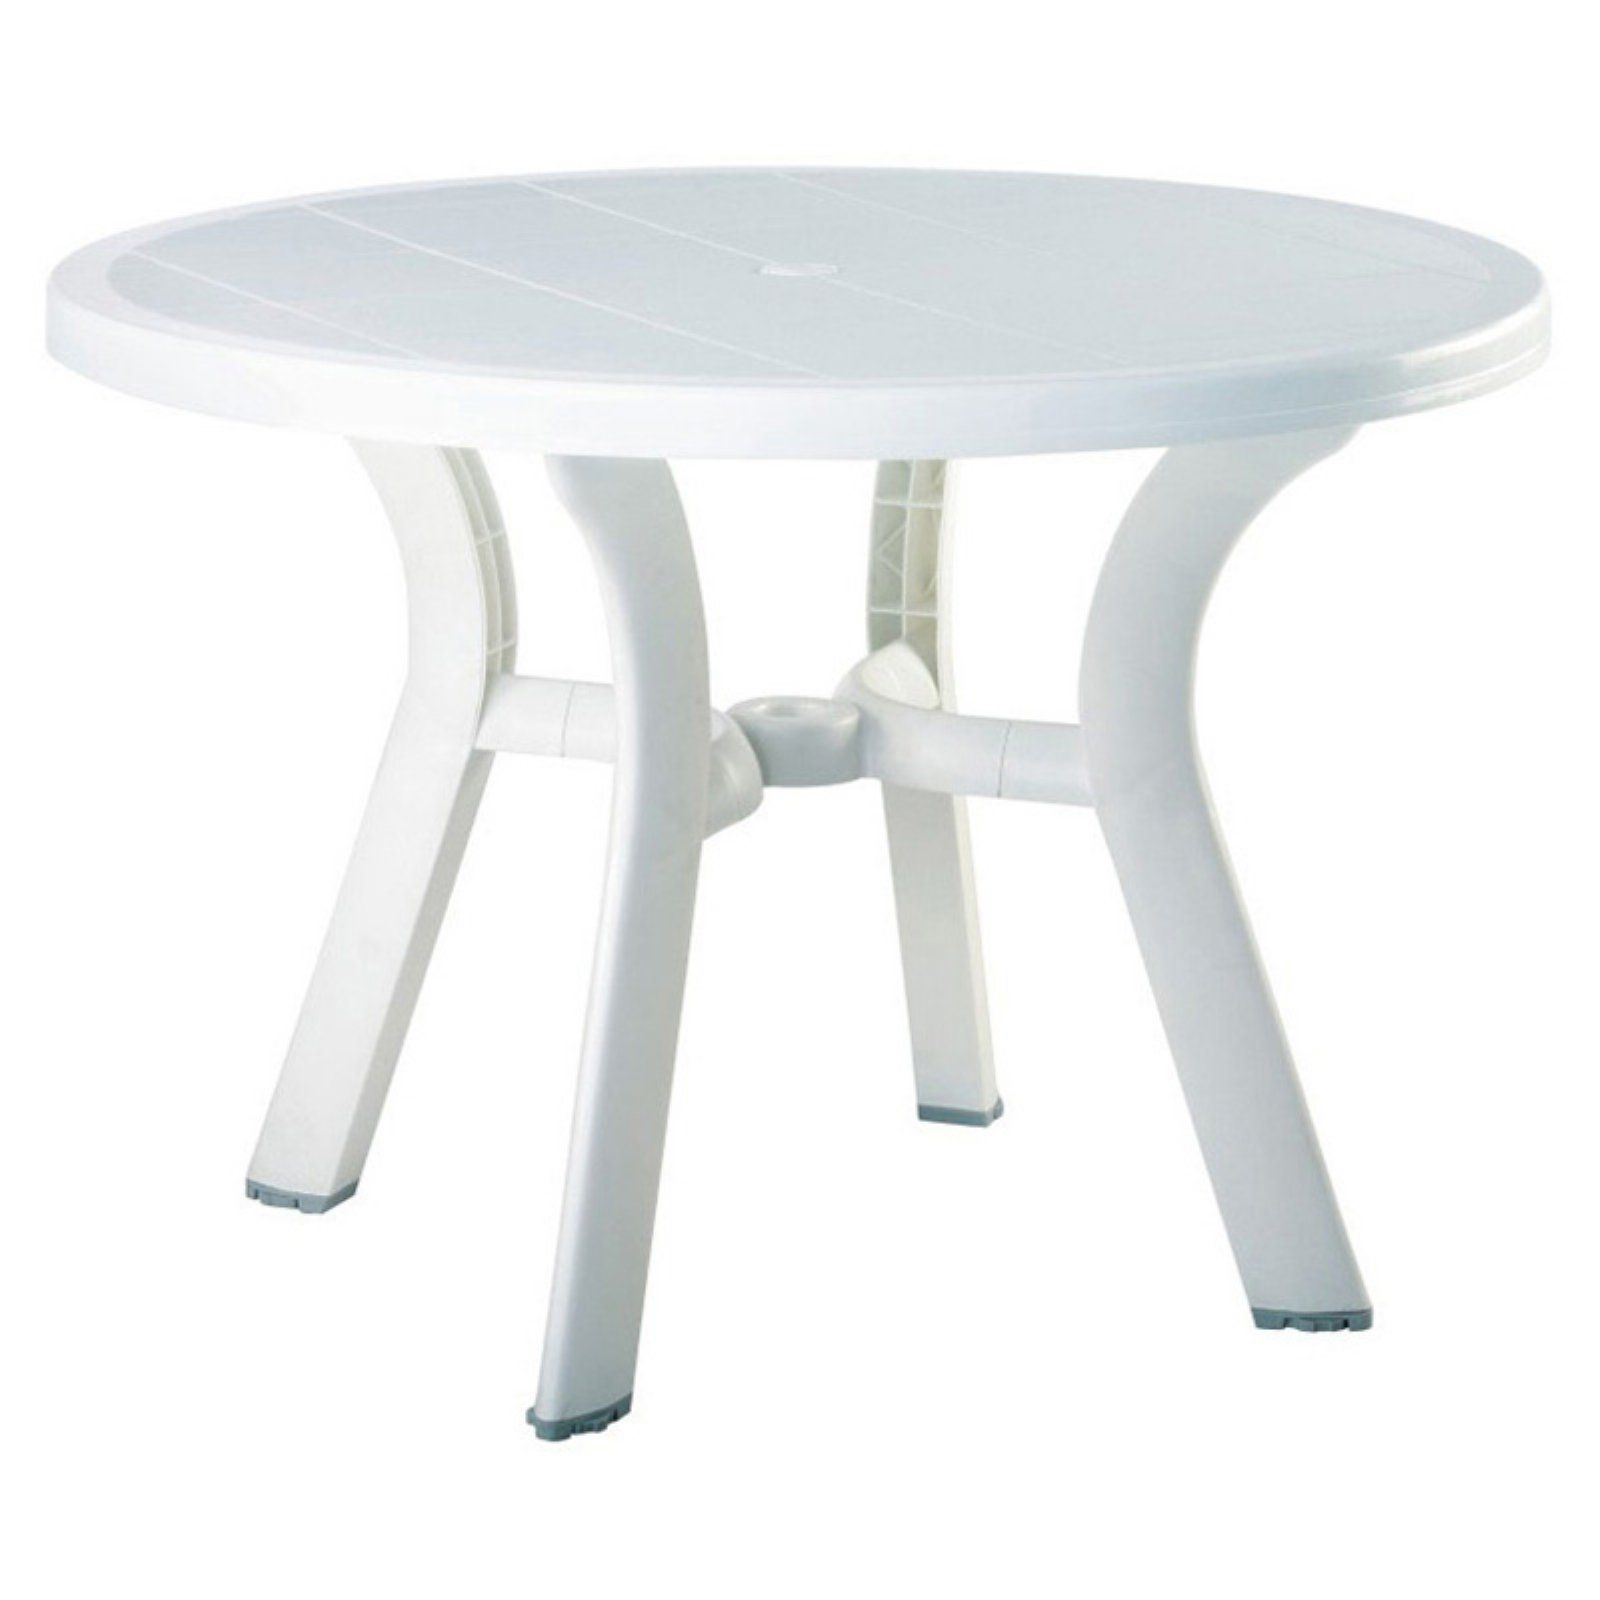 Outdoor Compamia Truva Resin Round Dining Table Square Dining